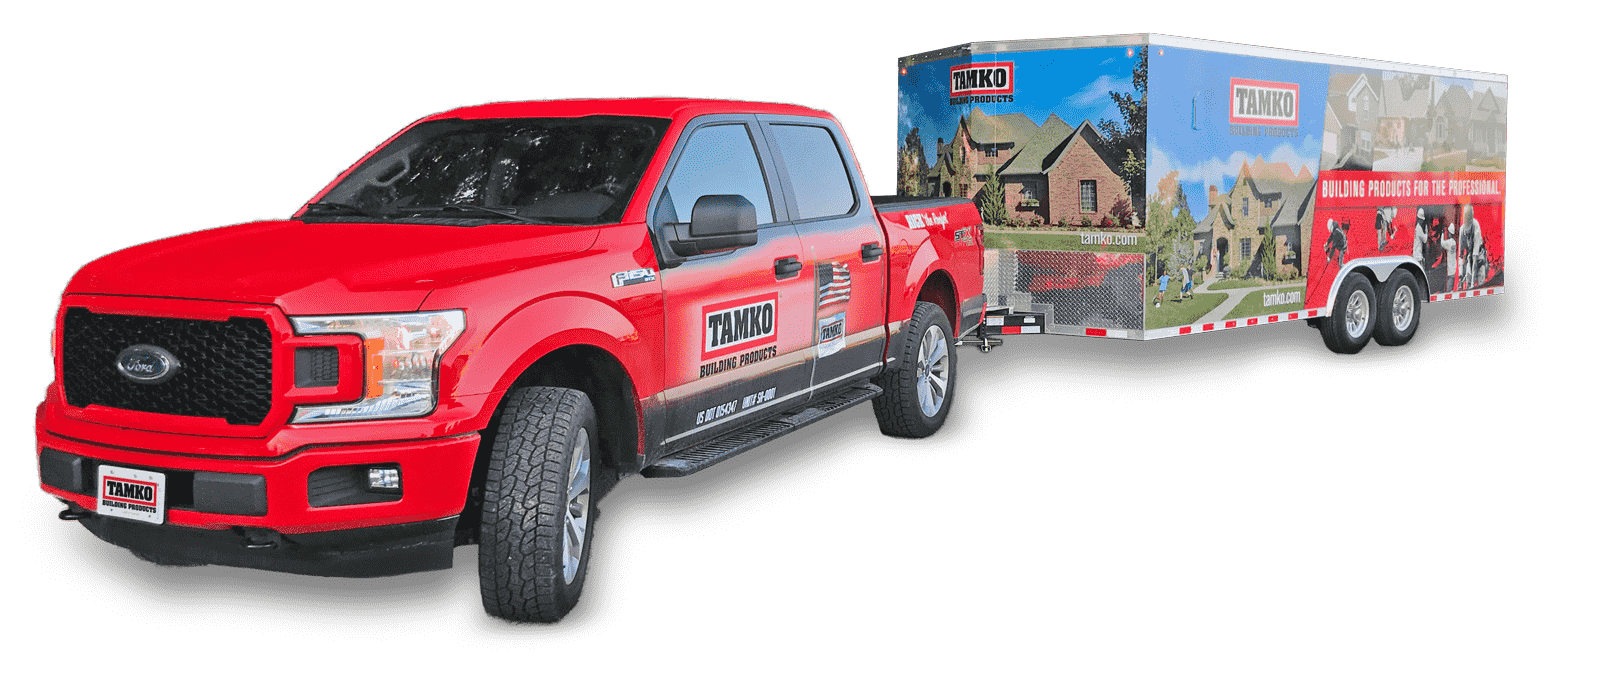 Roadshow Truck & Trailer